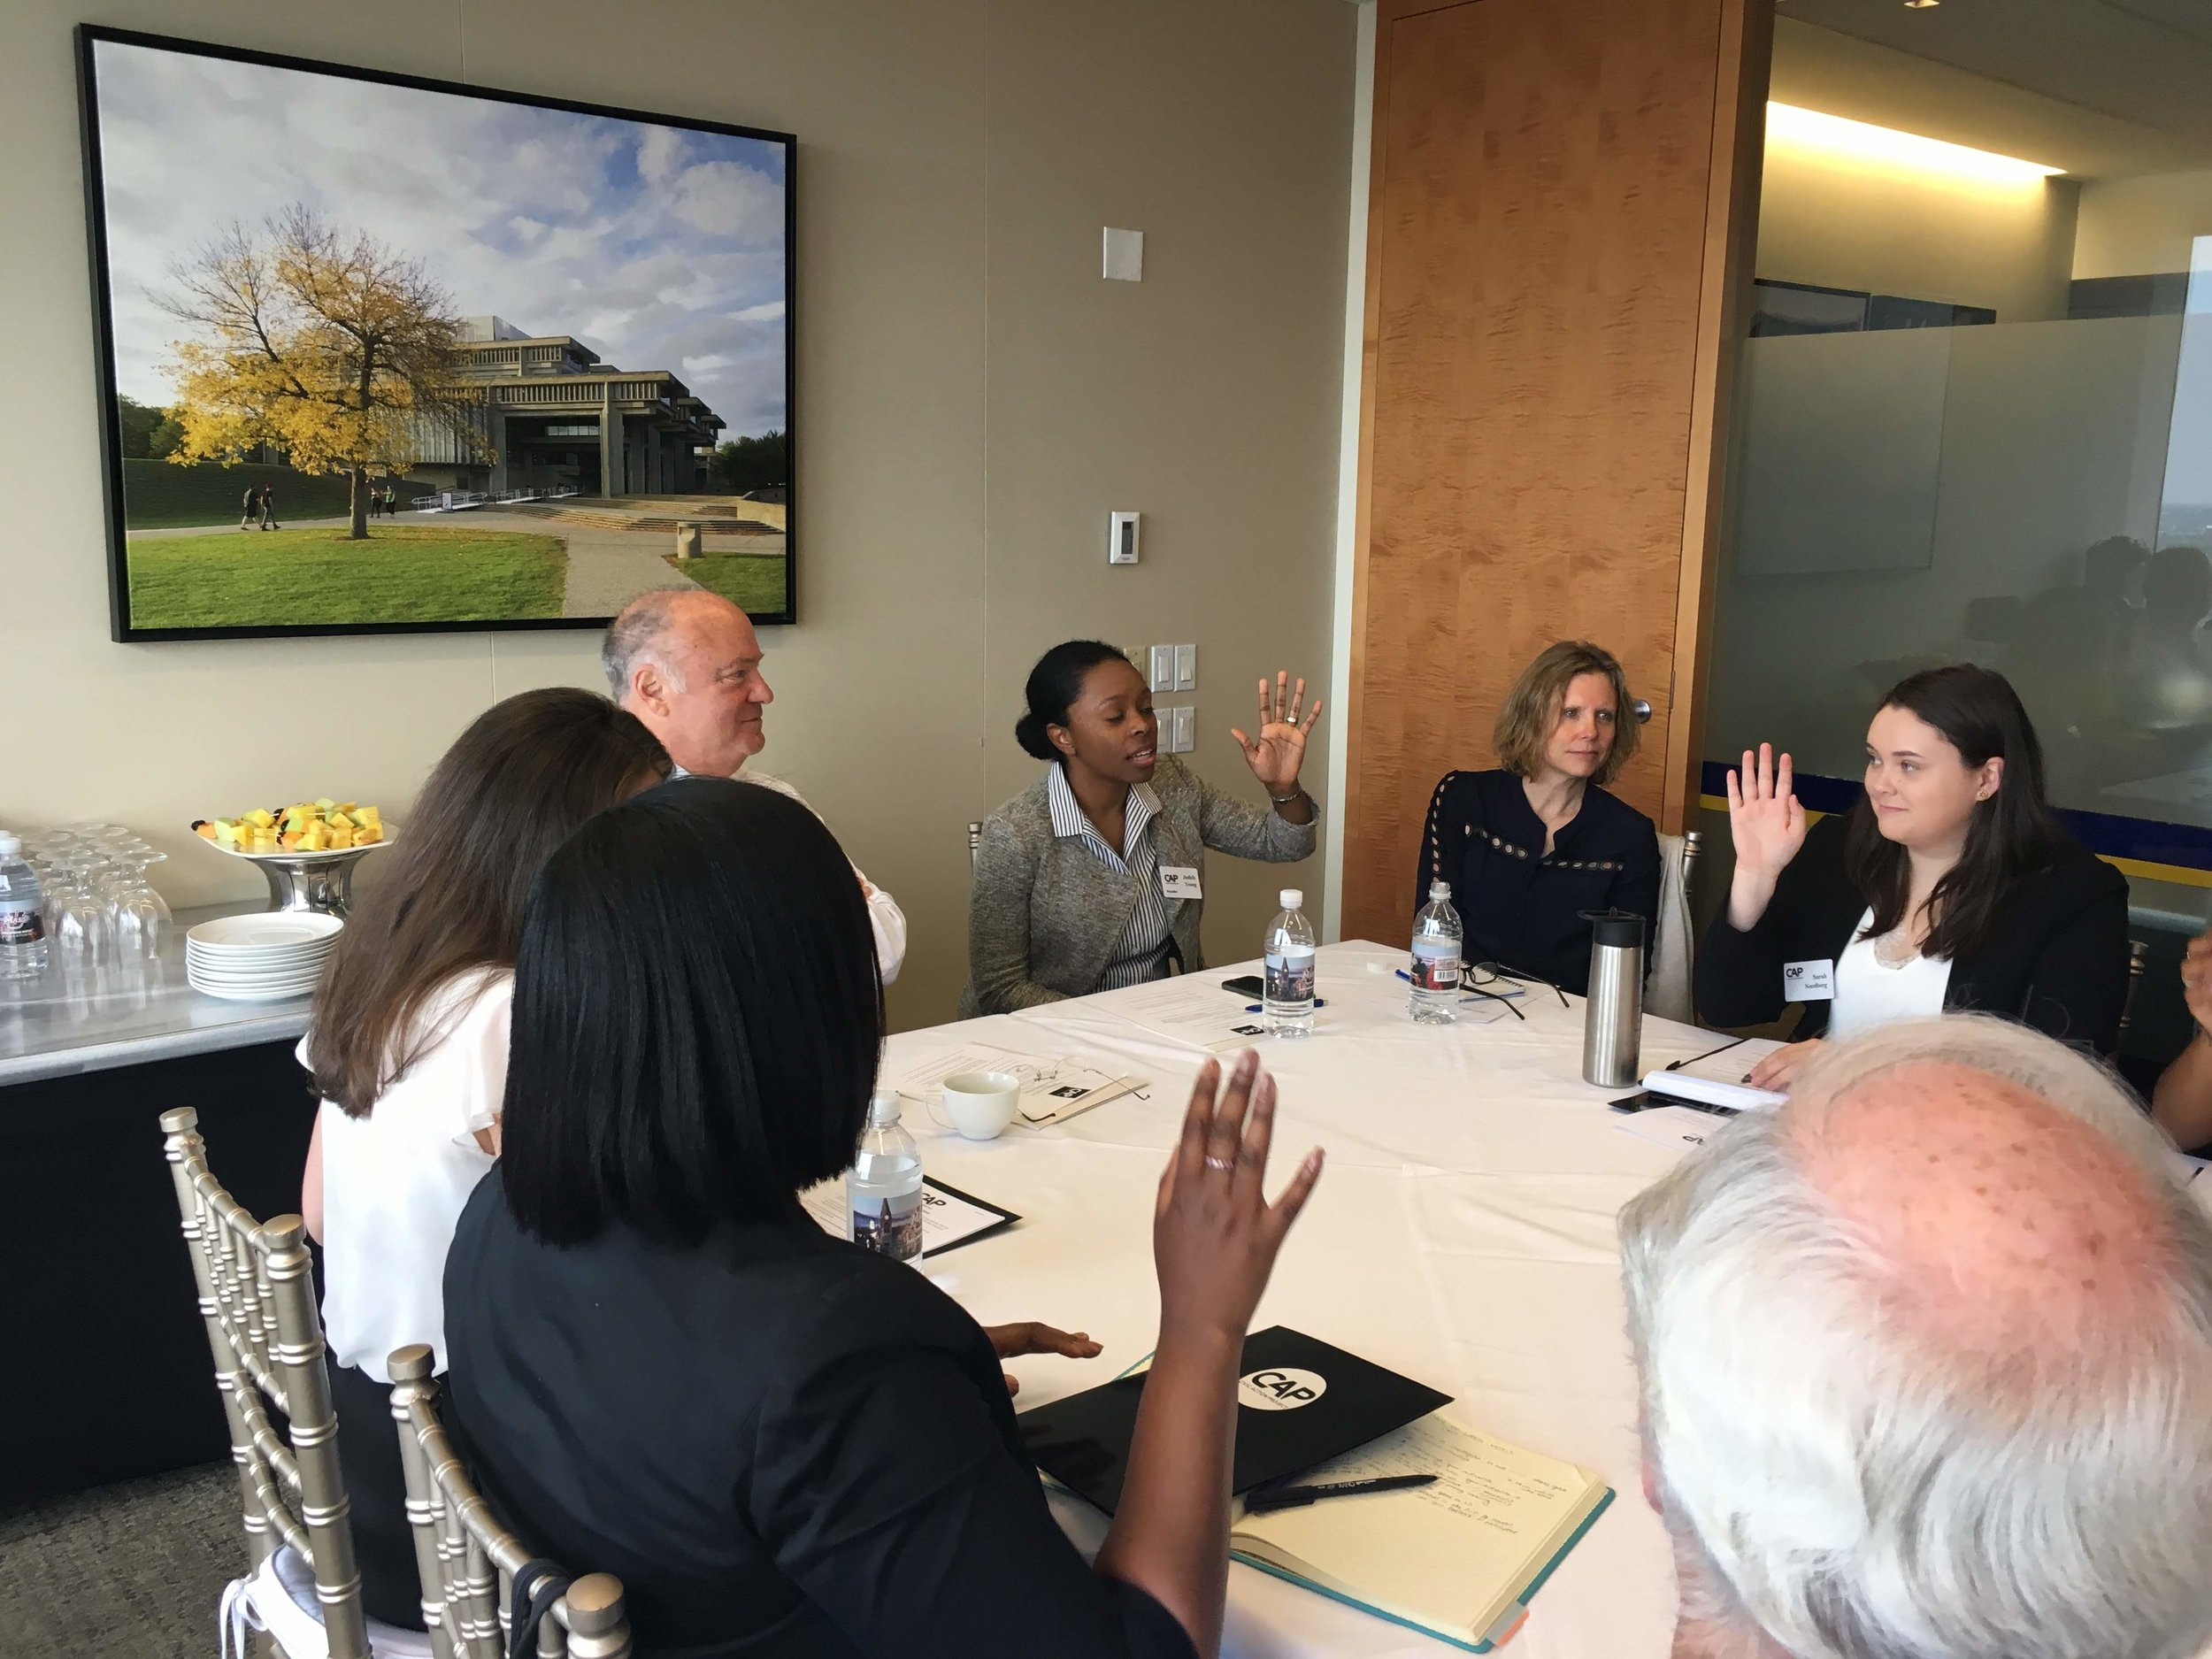 CAP Founders Steve Crosby and Judith Young, and UMass Amherst Dean of Public Policy, Satu Zoller lead discussion with CAP Fellows on June 5th 2019.